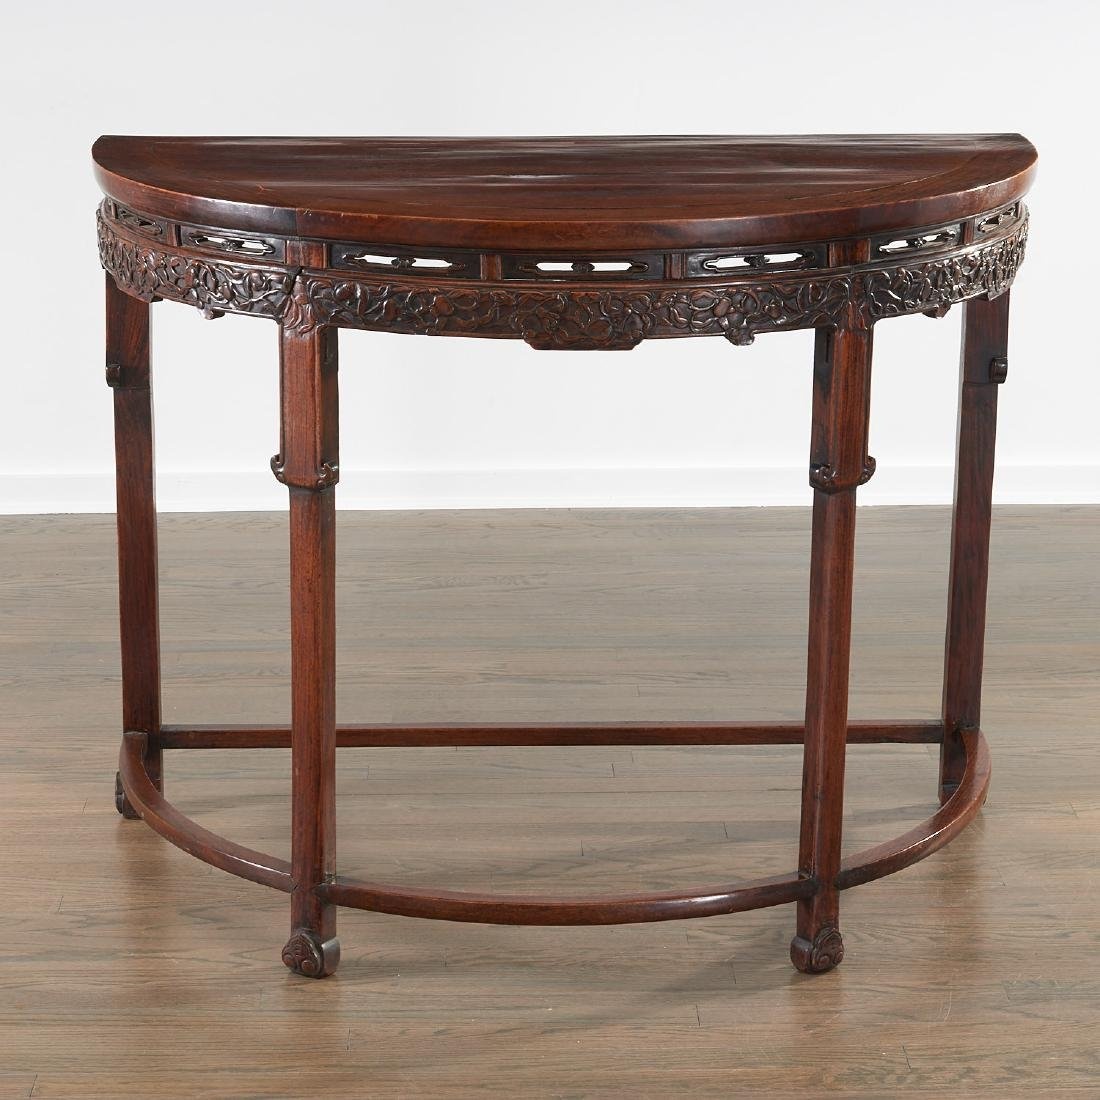 Nice Chinese demilune console table